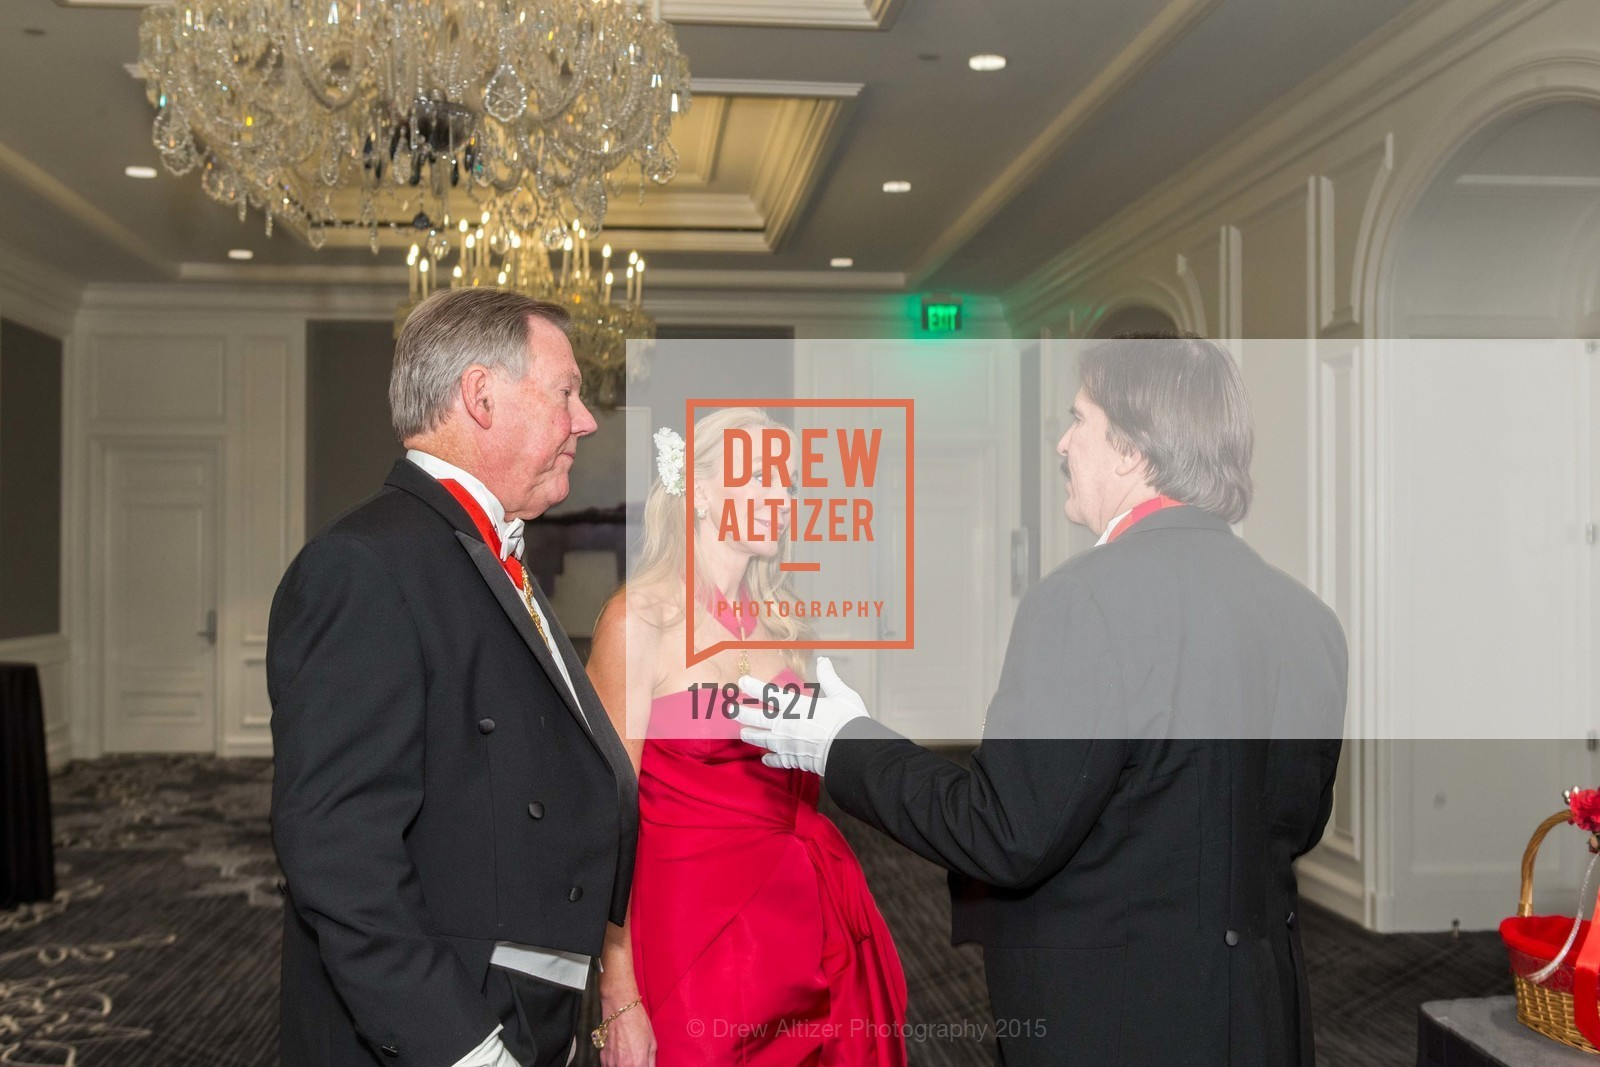 Bill Gisvold, Giselle Parry, John Rosin, Sovereign Order Of St John of Jerusalem Knights Hospitaller Gala, Ritz Carlton San Francisco, December 5th, 2015,Drew Altizer, Drew Altizer Photography, full-service agency, private events, San Francisco photographer, photographer california